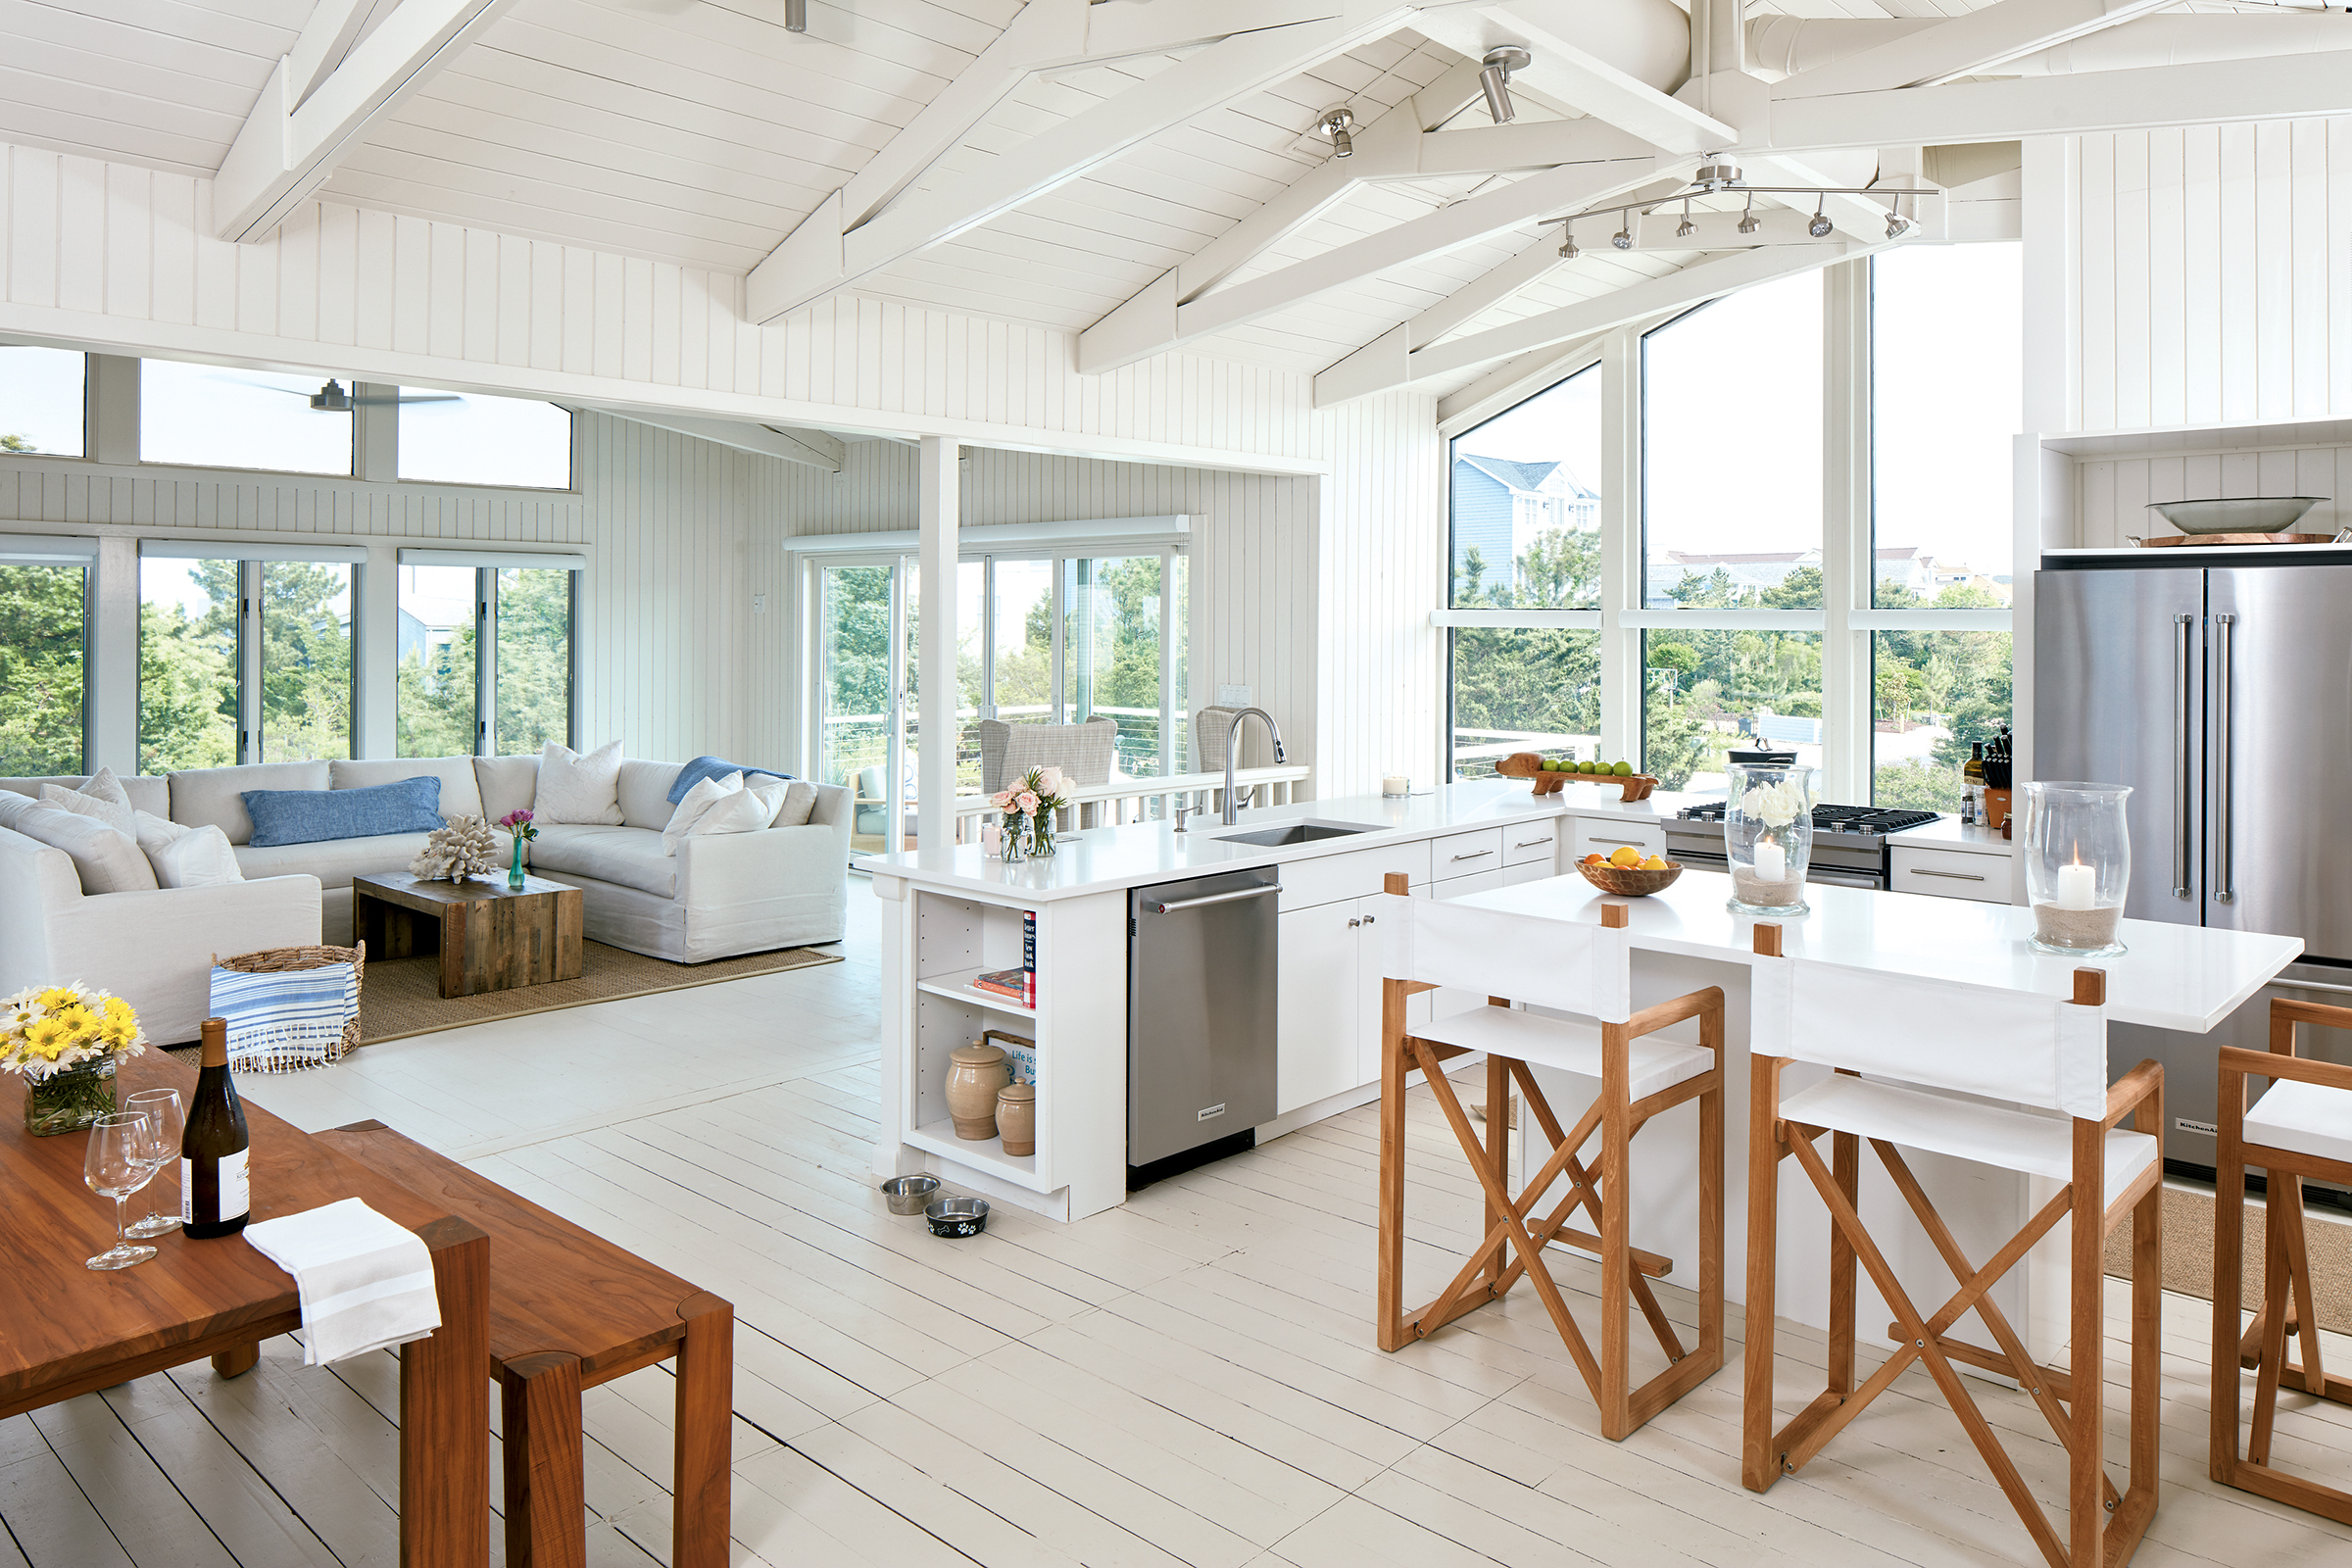 Builder Marnie Oursler heightened the beachy feel with a bright-white palette. Photograph by by Dana Hof.